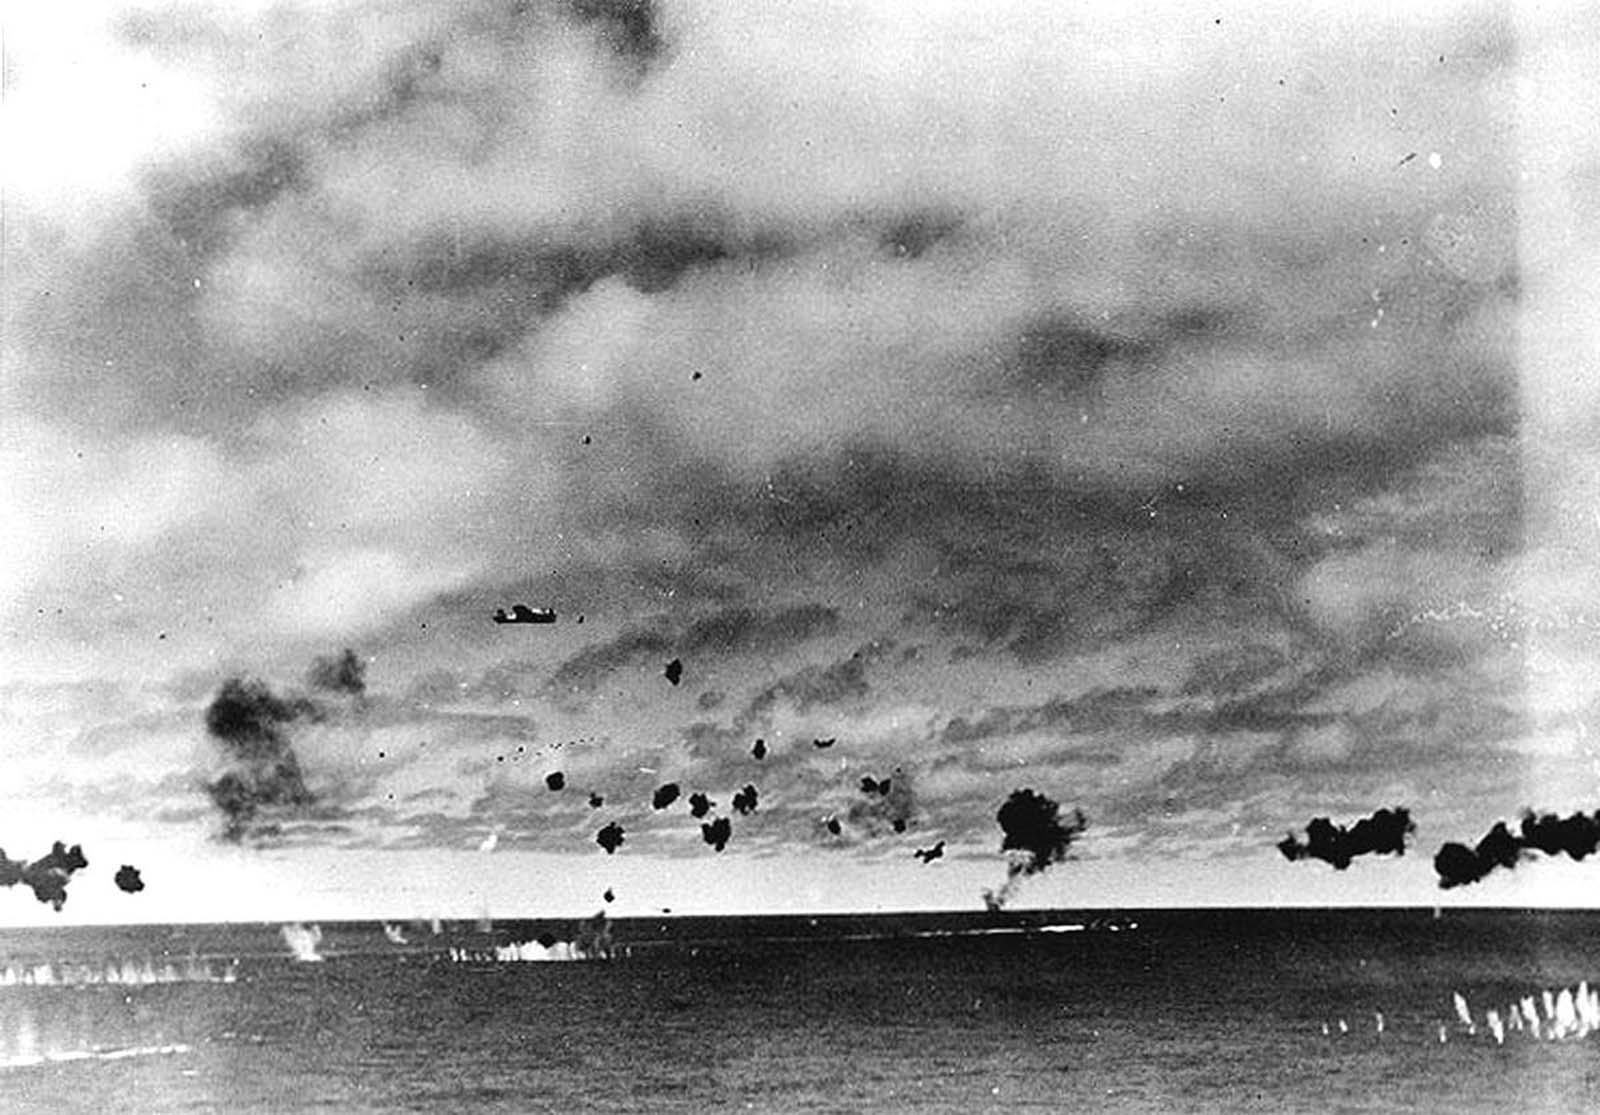 Japanese Type 97 shipboard attack aircraft from the carrier Hiryu amid heavy anti-aircraft fire, during the torpedo attack on USS Yorktown in the mid-afternoon of June 4, 1942. At least three planes are visible, the nearest having already dropped its torpedo. The other two are lower and closer to the center, apparently withdrawing. Smoke on the horizon in right center is from a crashed plane.